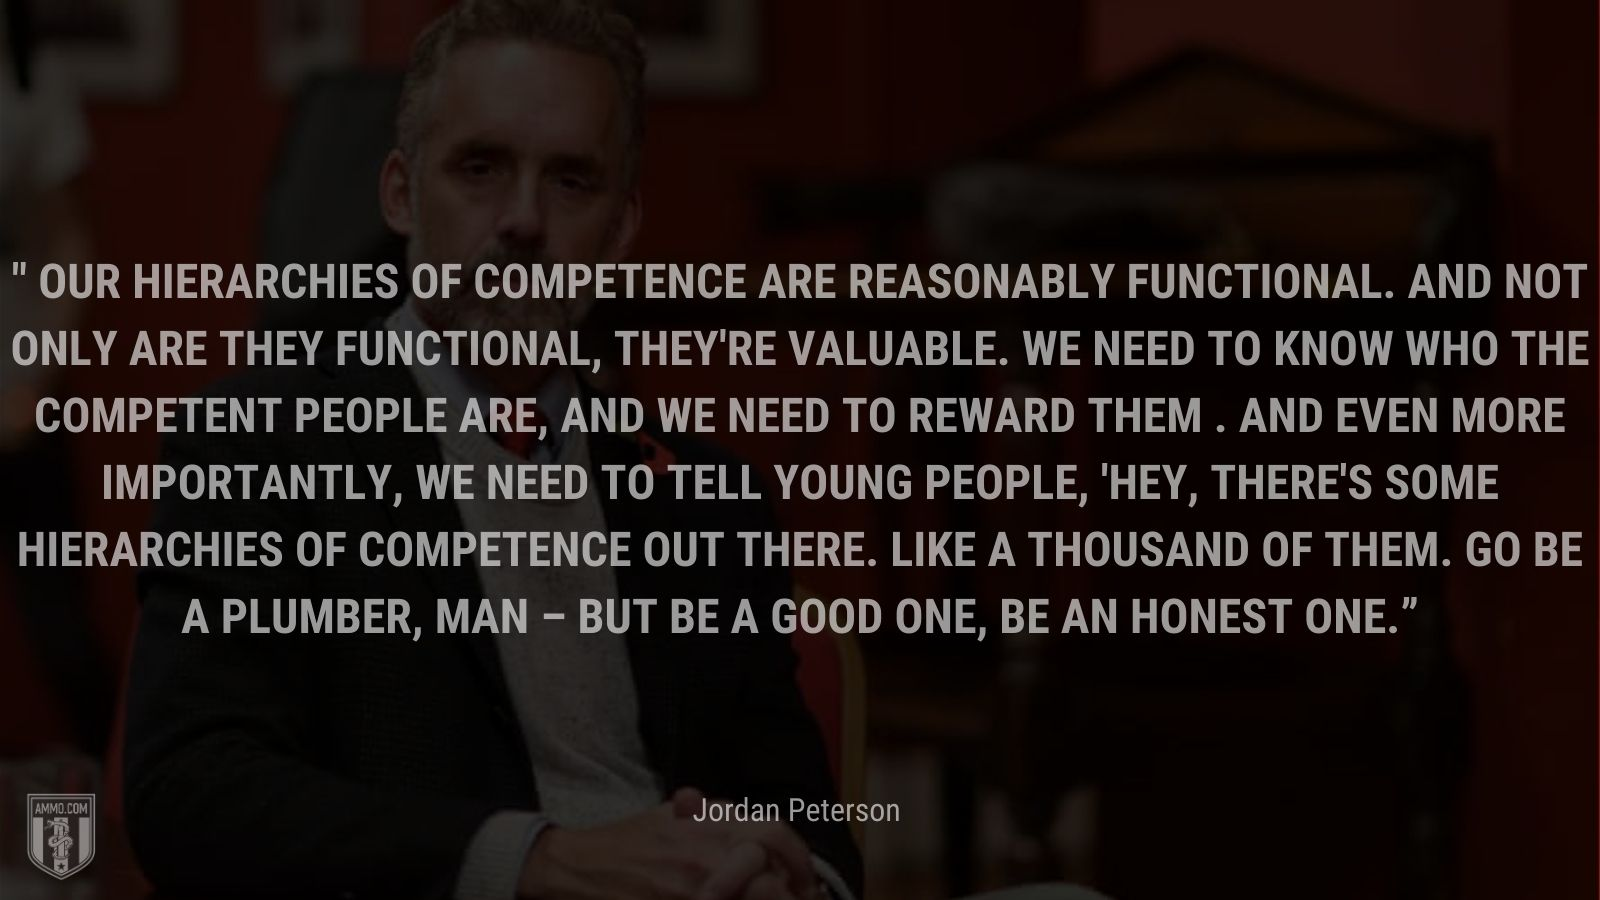 """""""Our hierarchies of competence are reasonably functional. And not only are they functional, they're valuable. We need to know who the competent people are, and we need to reward them. And even more importantly, we need to tell young people, 'Hey, there's some hierarchies of competence out there. Like a thousand of them. Go be a plumber, man – but be a good one, be an honest one."""" - Jordan Peterson"""